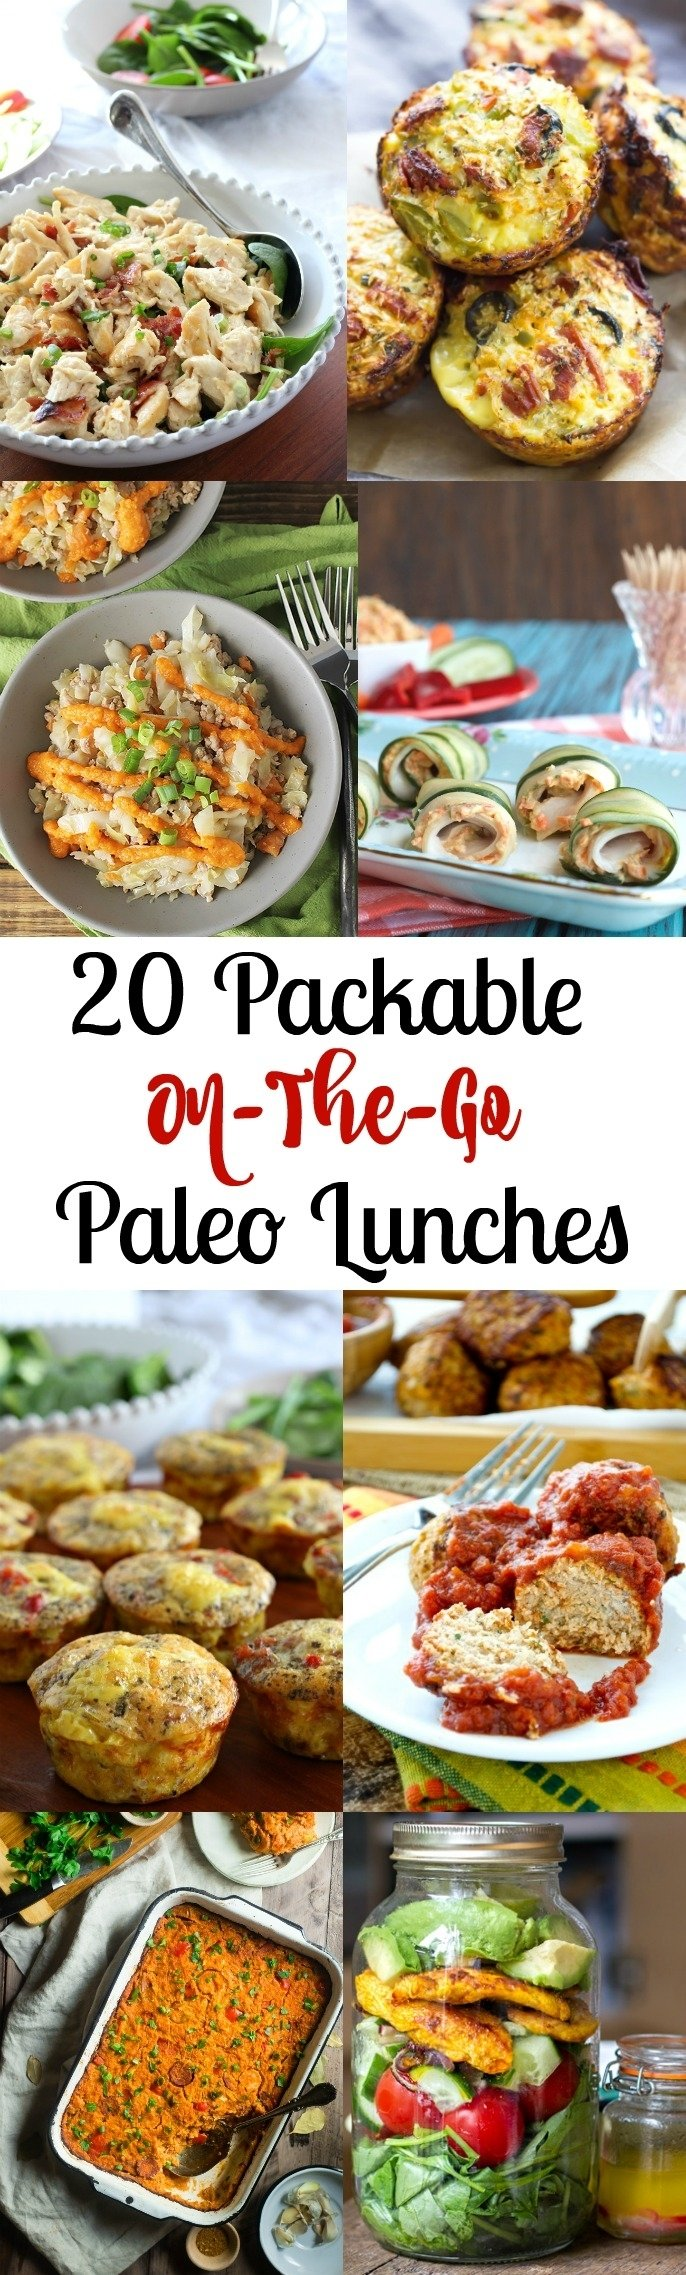 10 Lovable Paleo Lunch Ideas For Work 20 packable on the go paleo lunches the paleo running momma 1